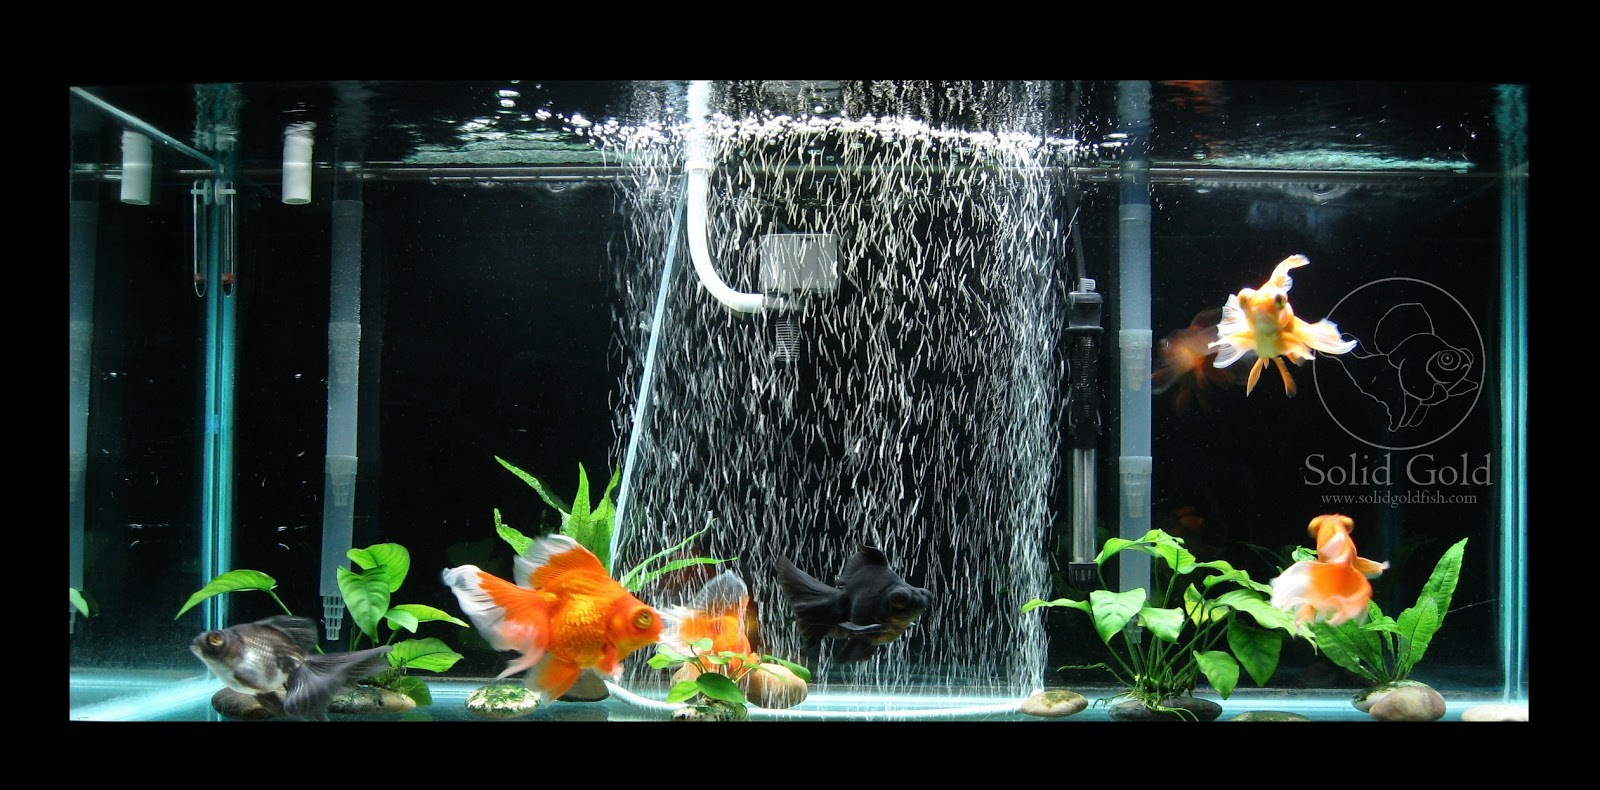 Fish in tank with goldfish - My 75 Gallon Tank Looking Cramped With 6 Fully Grown Fancy Goldfish